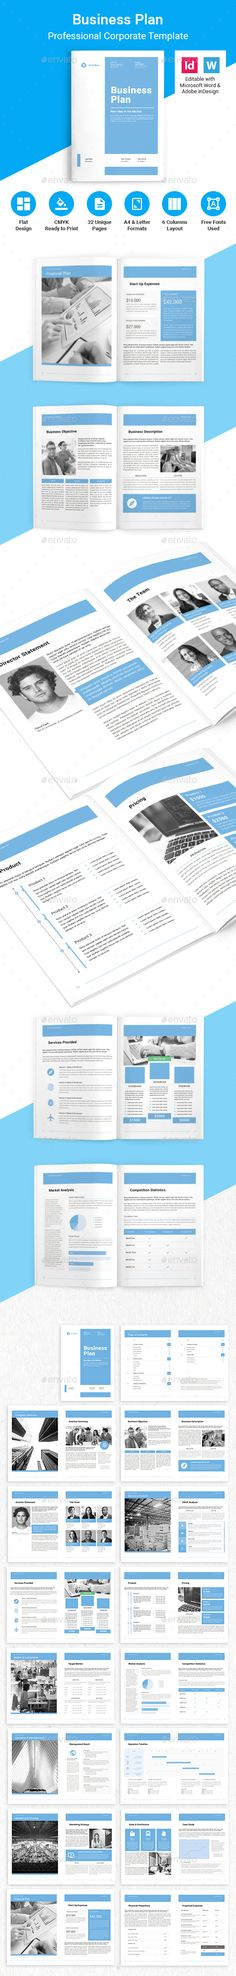 Proposal Creative, Colors and Texts - purchase proposal templates